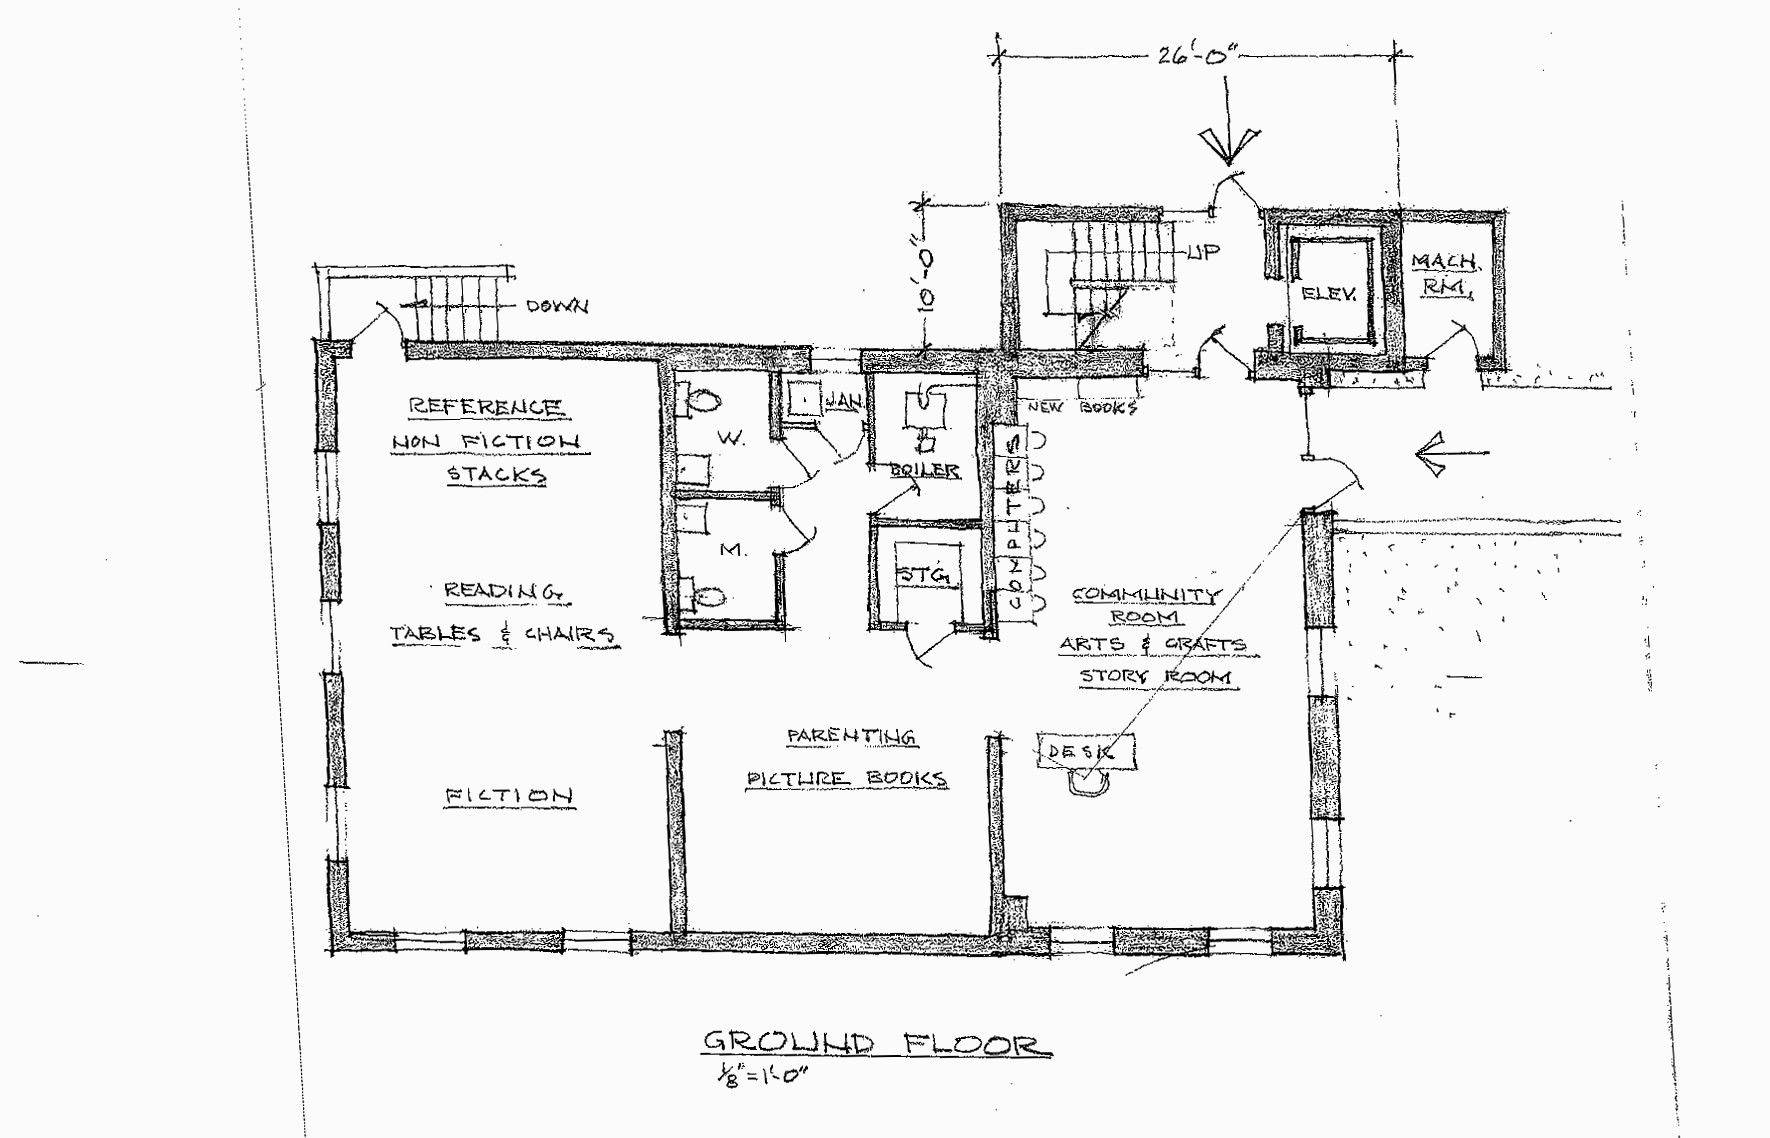 spider tie concrete house plans and small triplex house plans remarkable spider tie concrete house plans of spider tie concrete house plans